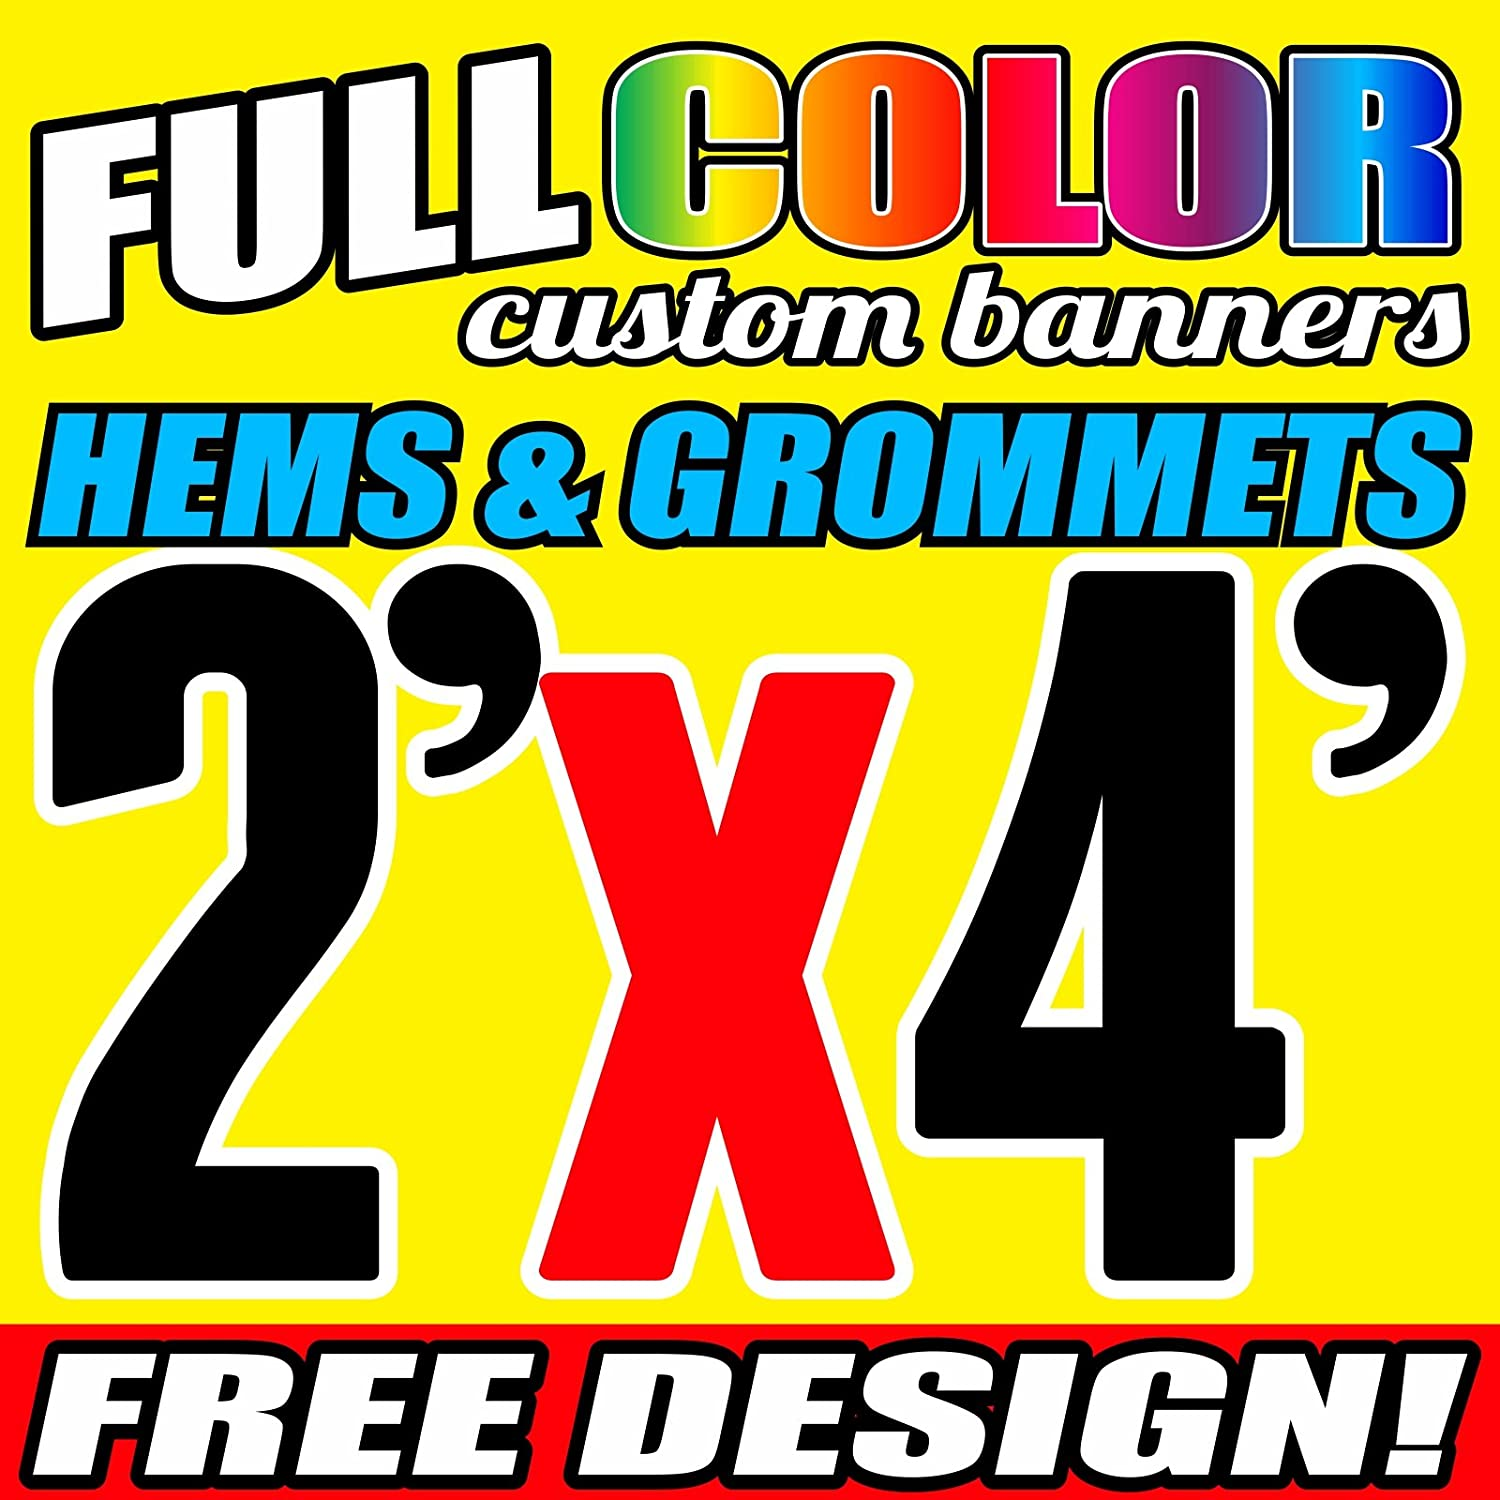 Free Design Included 2/' x 4/' Custom Vinyl Banner 13oz Full Color